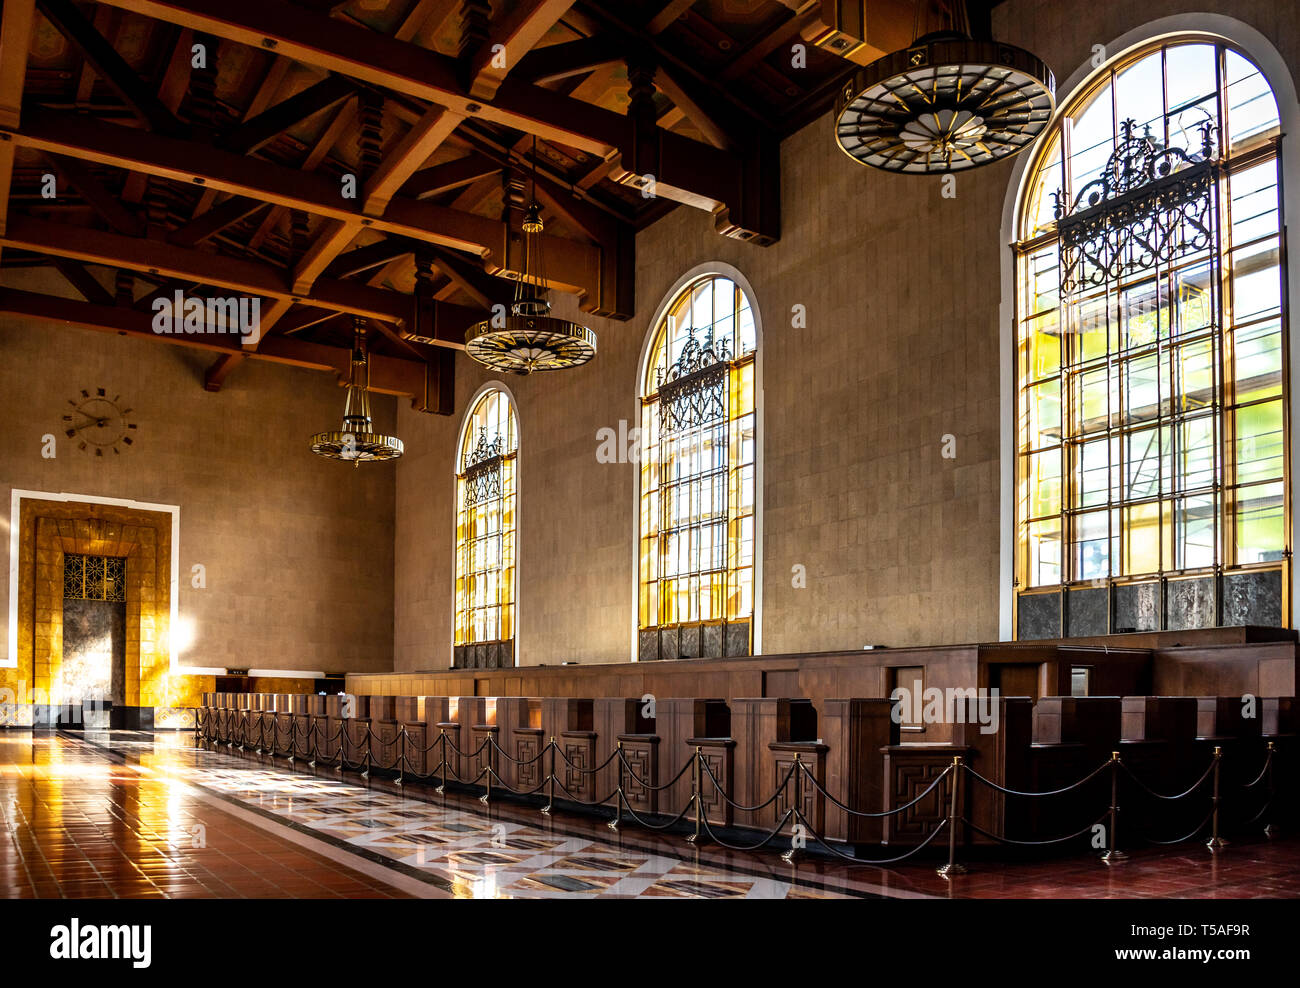 Light shining through Mission Revival windows, historic Union Station, Los Angeles, with Art Deco light fixtures hanging above former ticket counters. Stock Photo